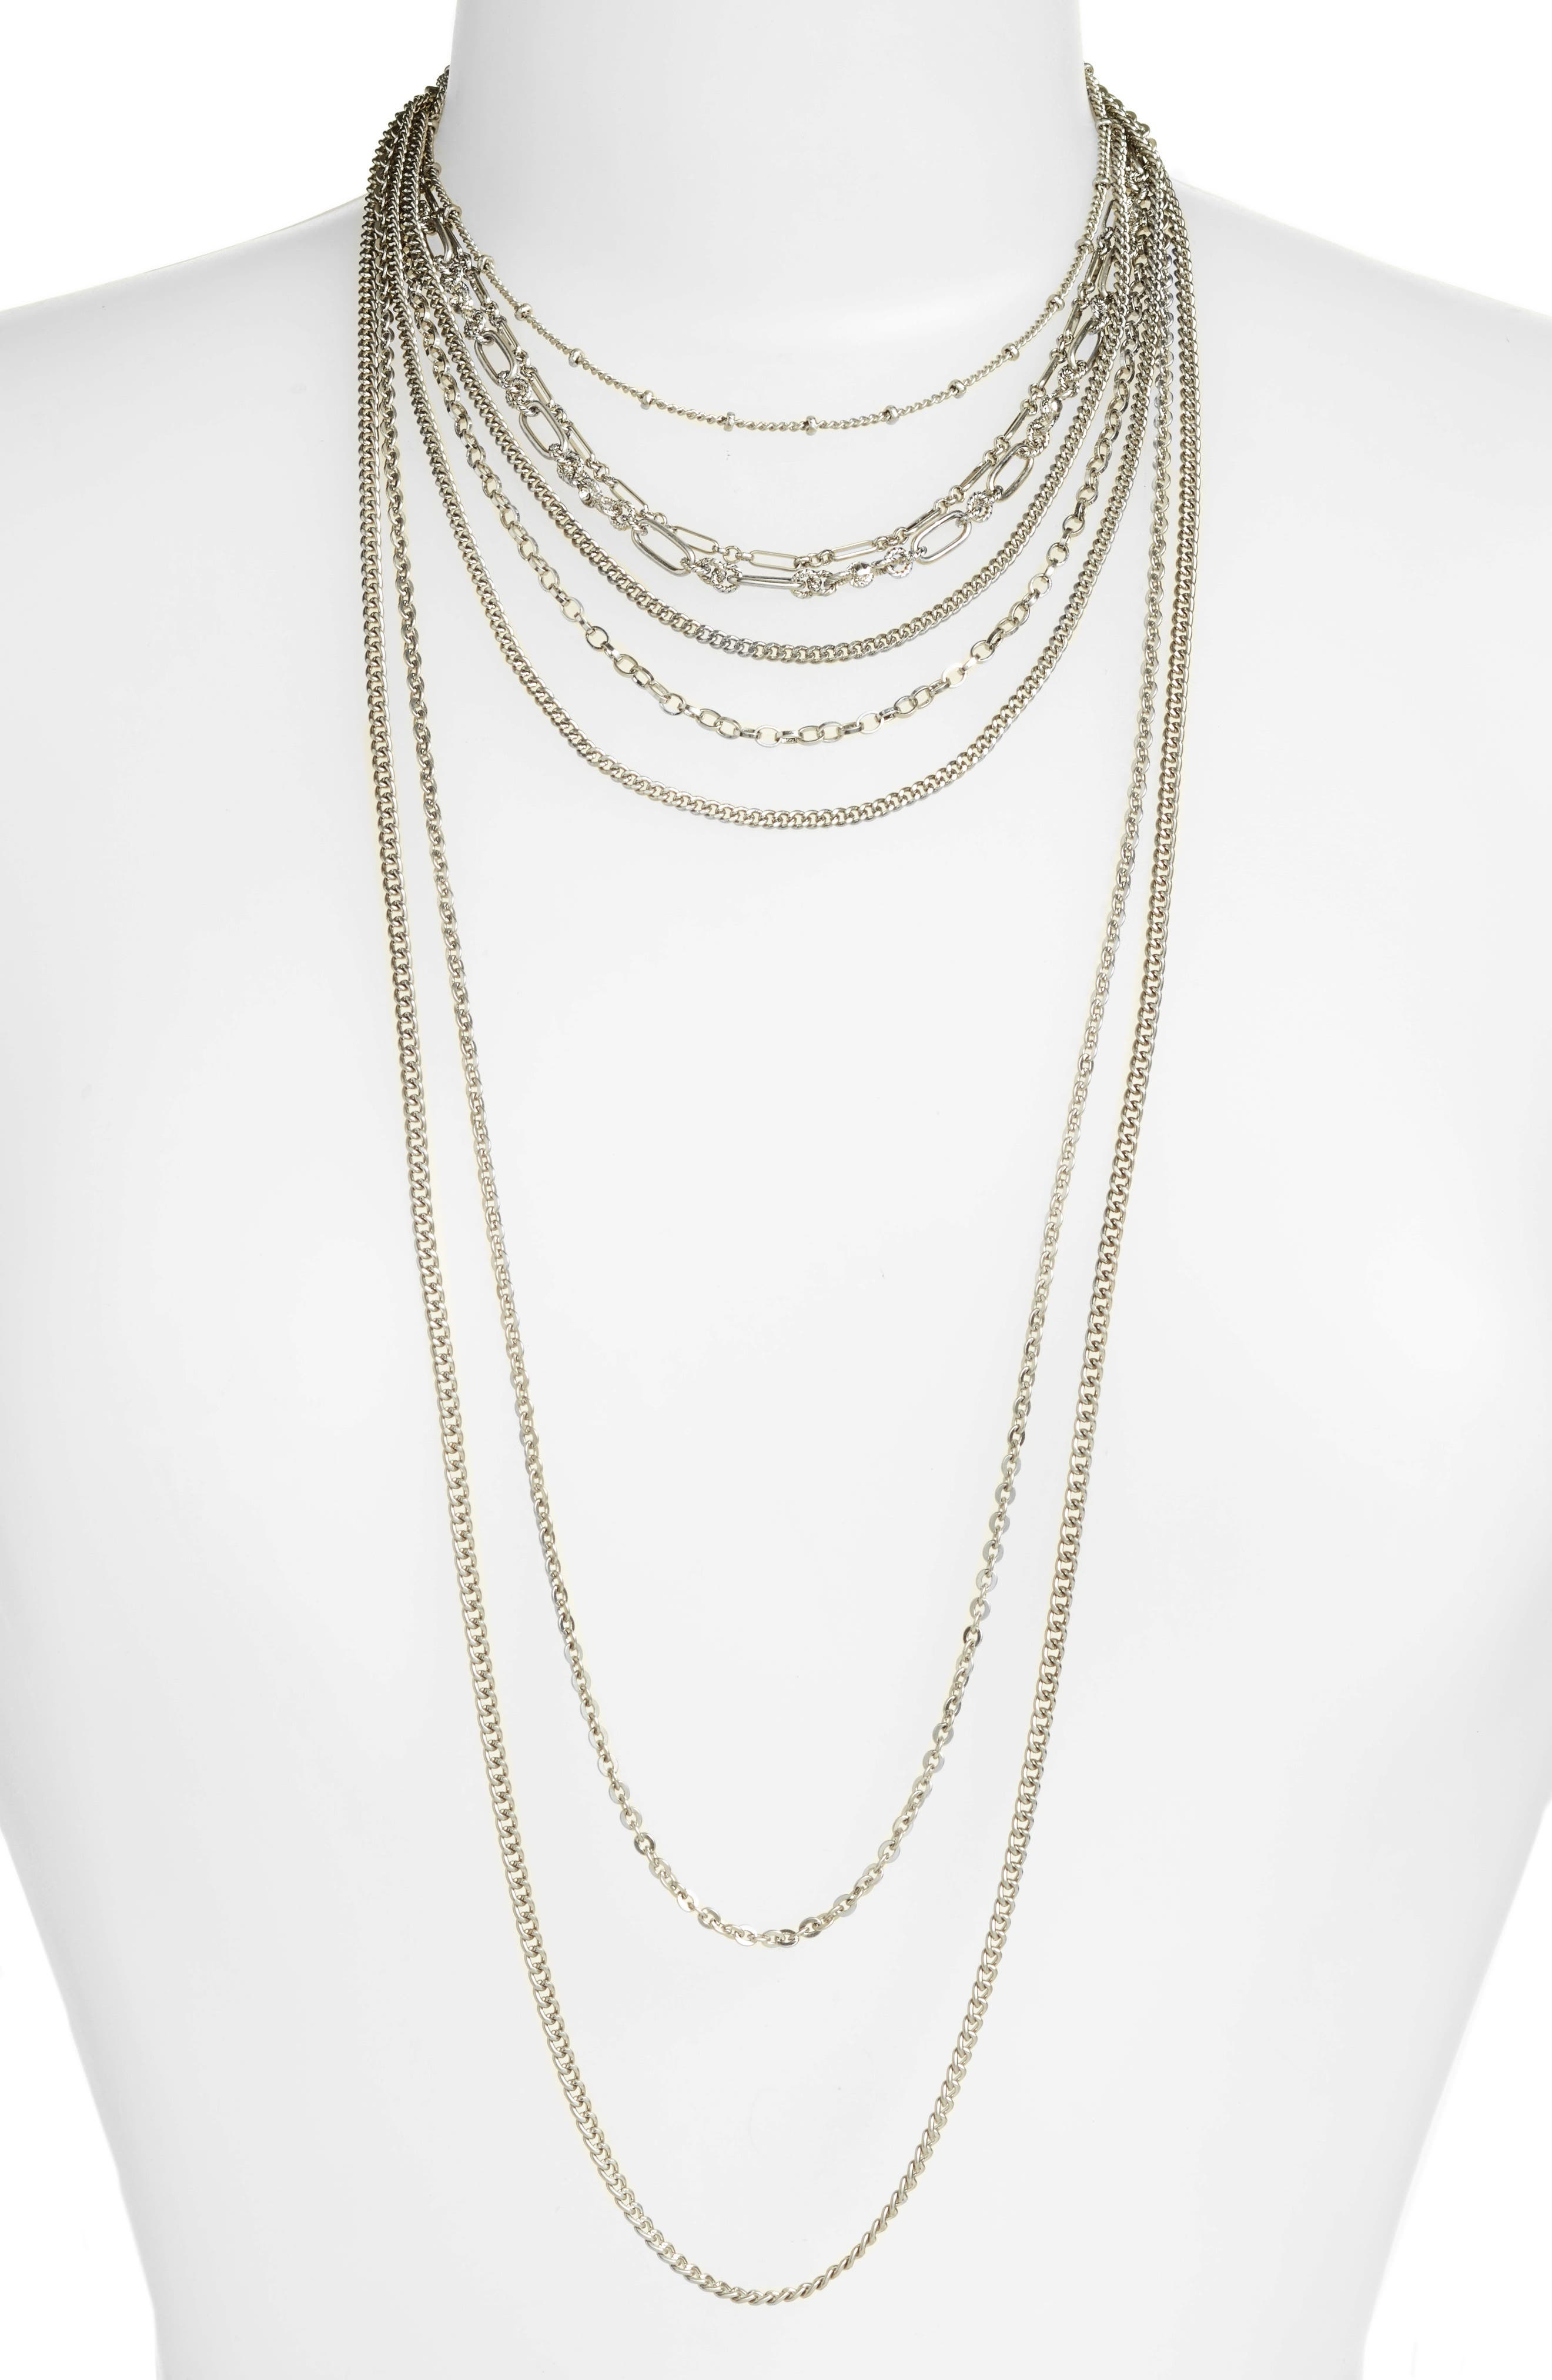 Alternate Image 1 Selected - Treasure & Bond Multistrand Textured Chain Necklace